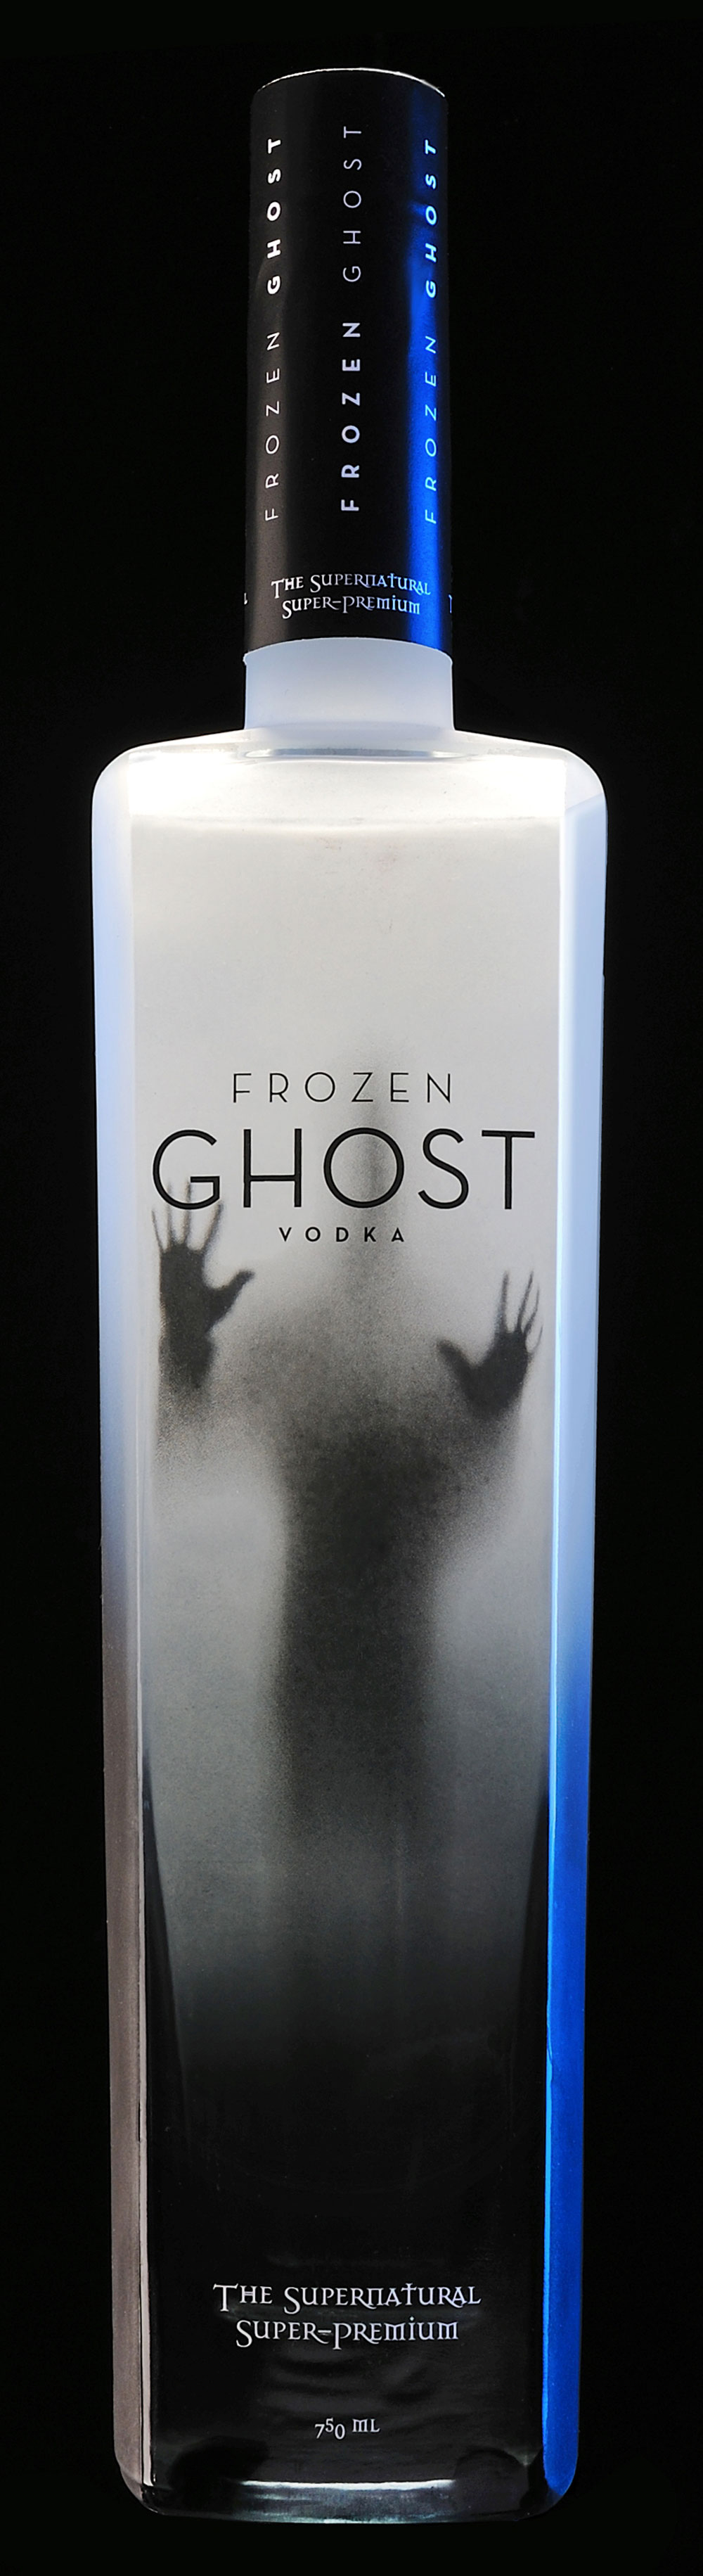 The Supernatural Super-premium – Frozen Ghost Vodka